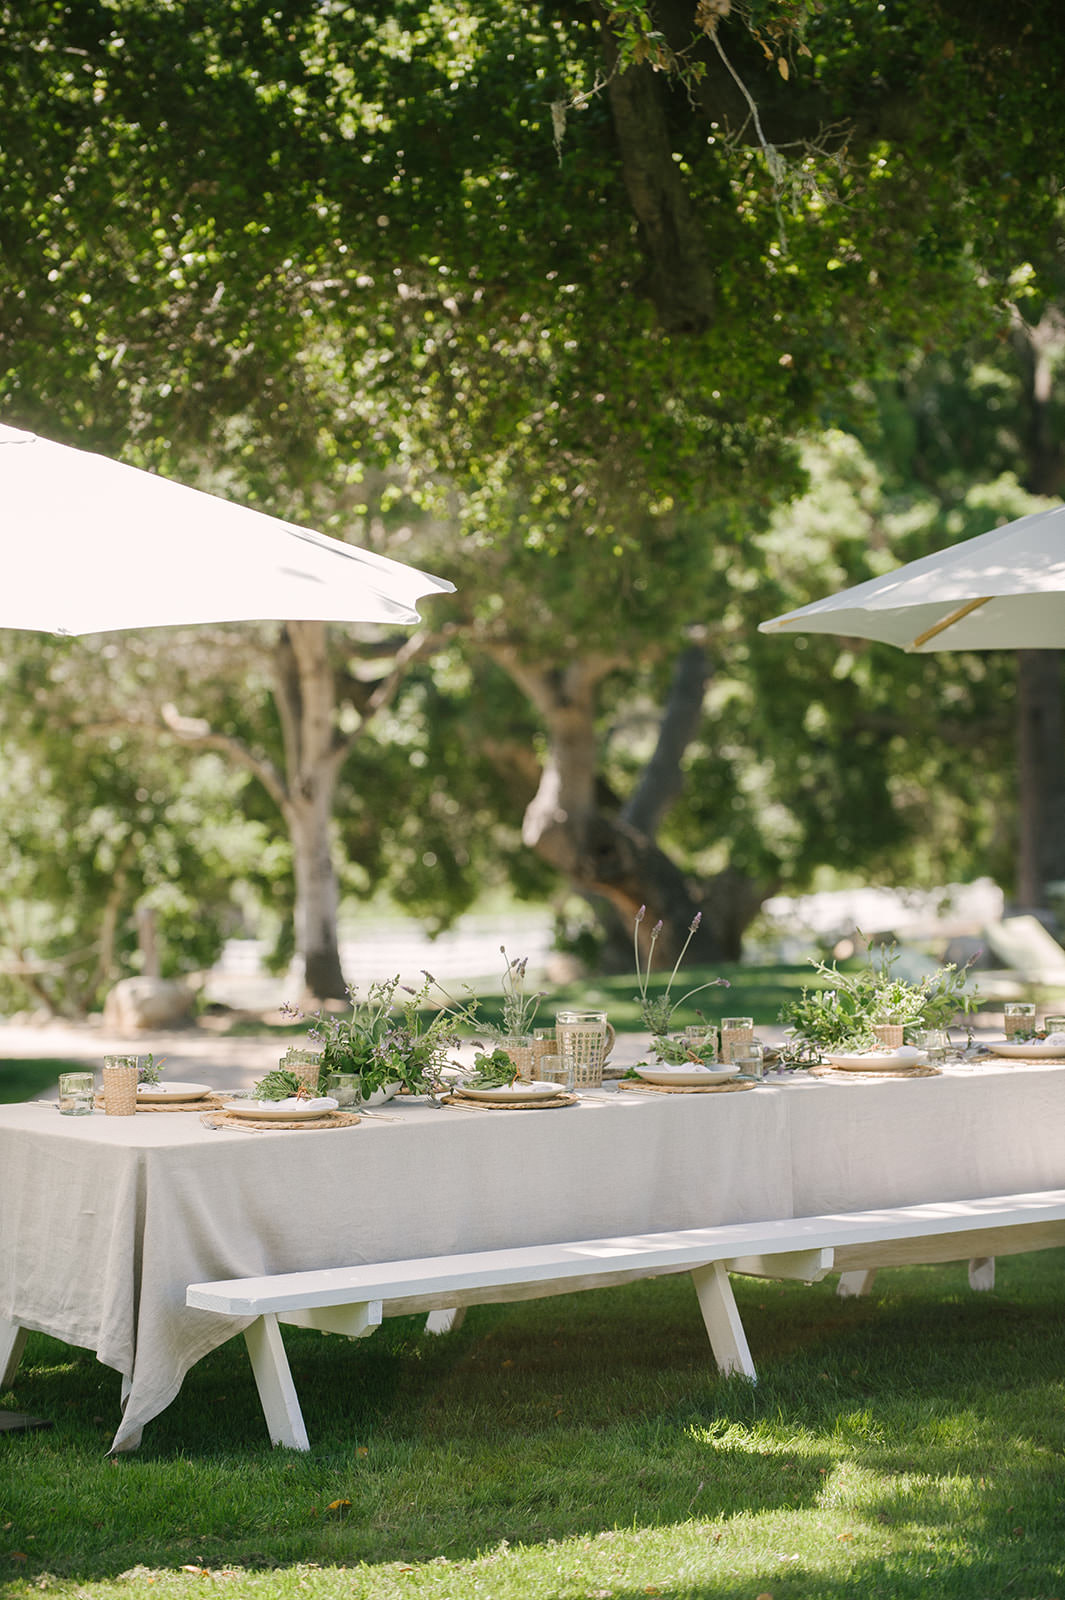 Outdoor dining tablescape ideas for summertime with pops of green, lavender, and linen!